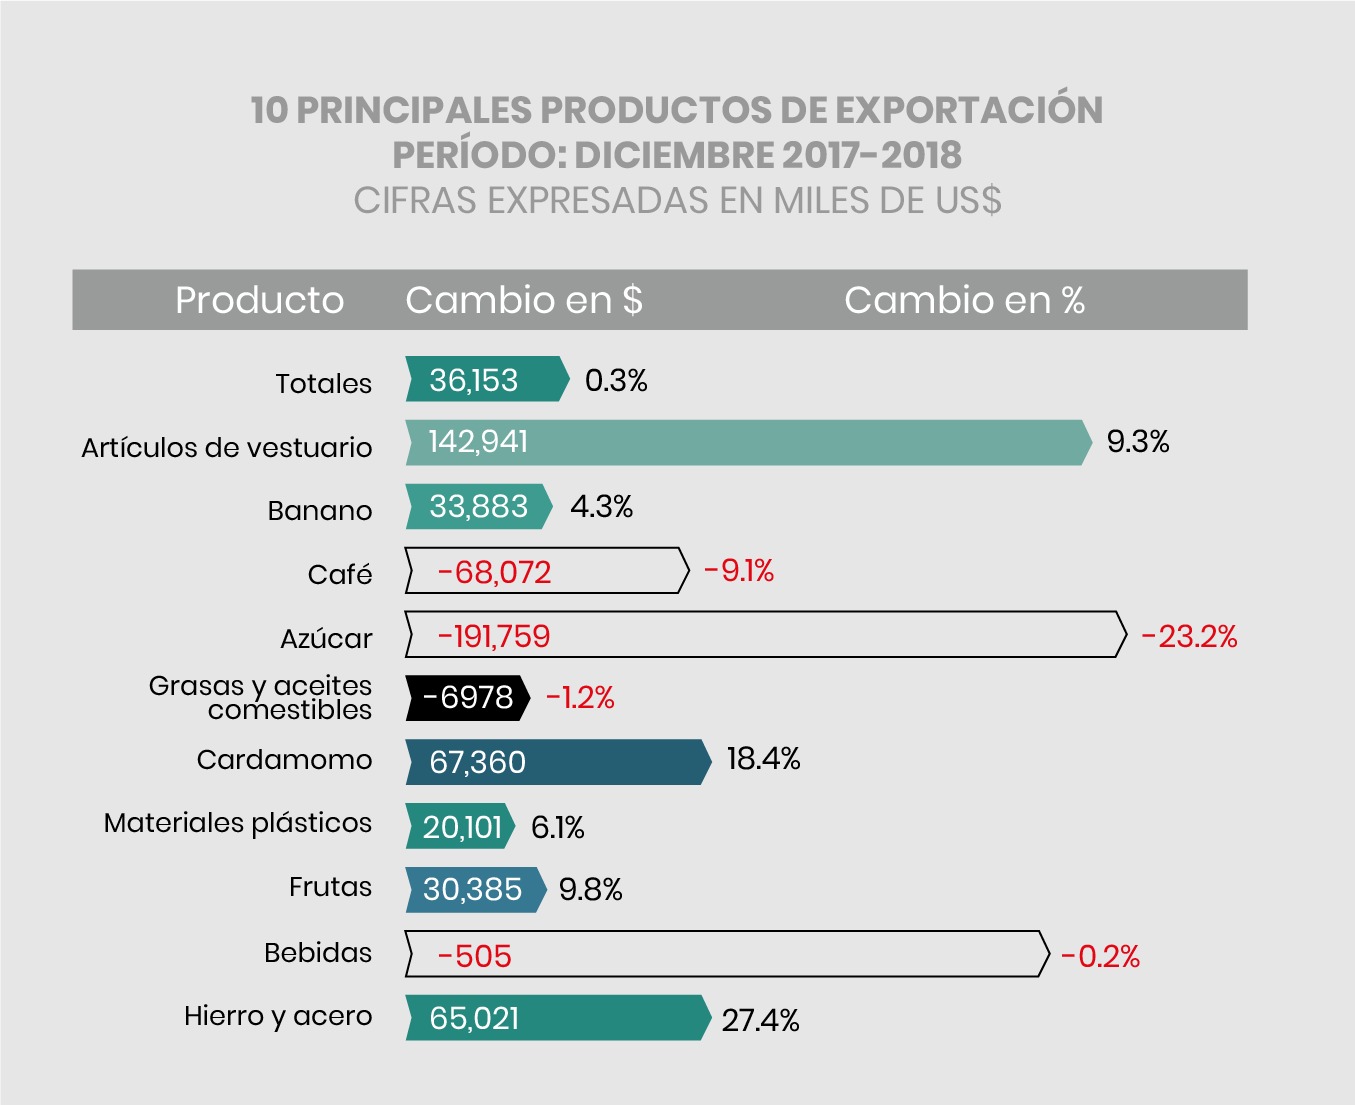 Productos estadísticas